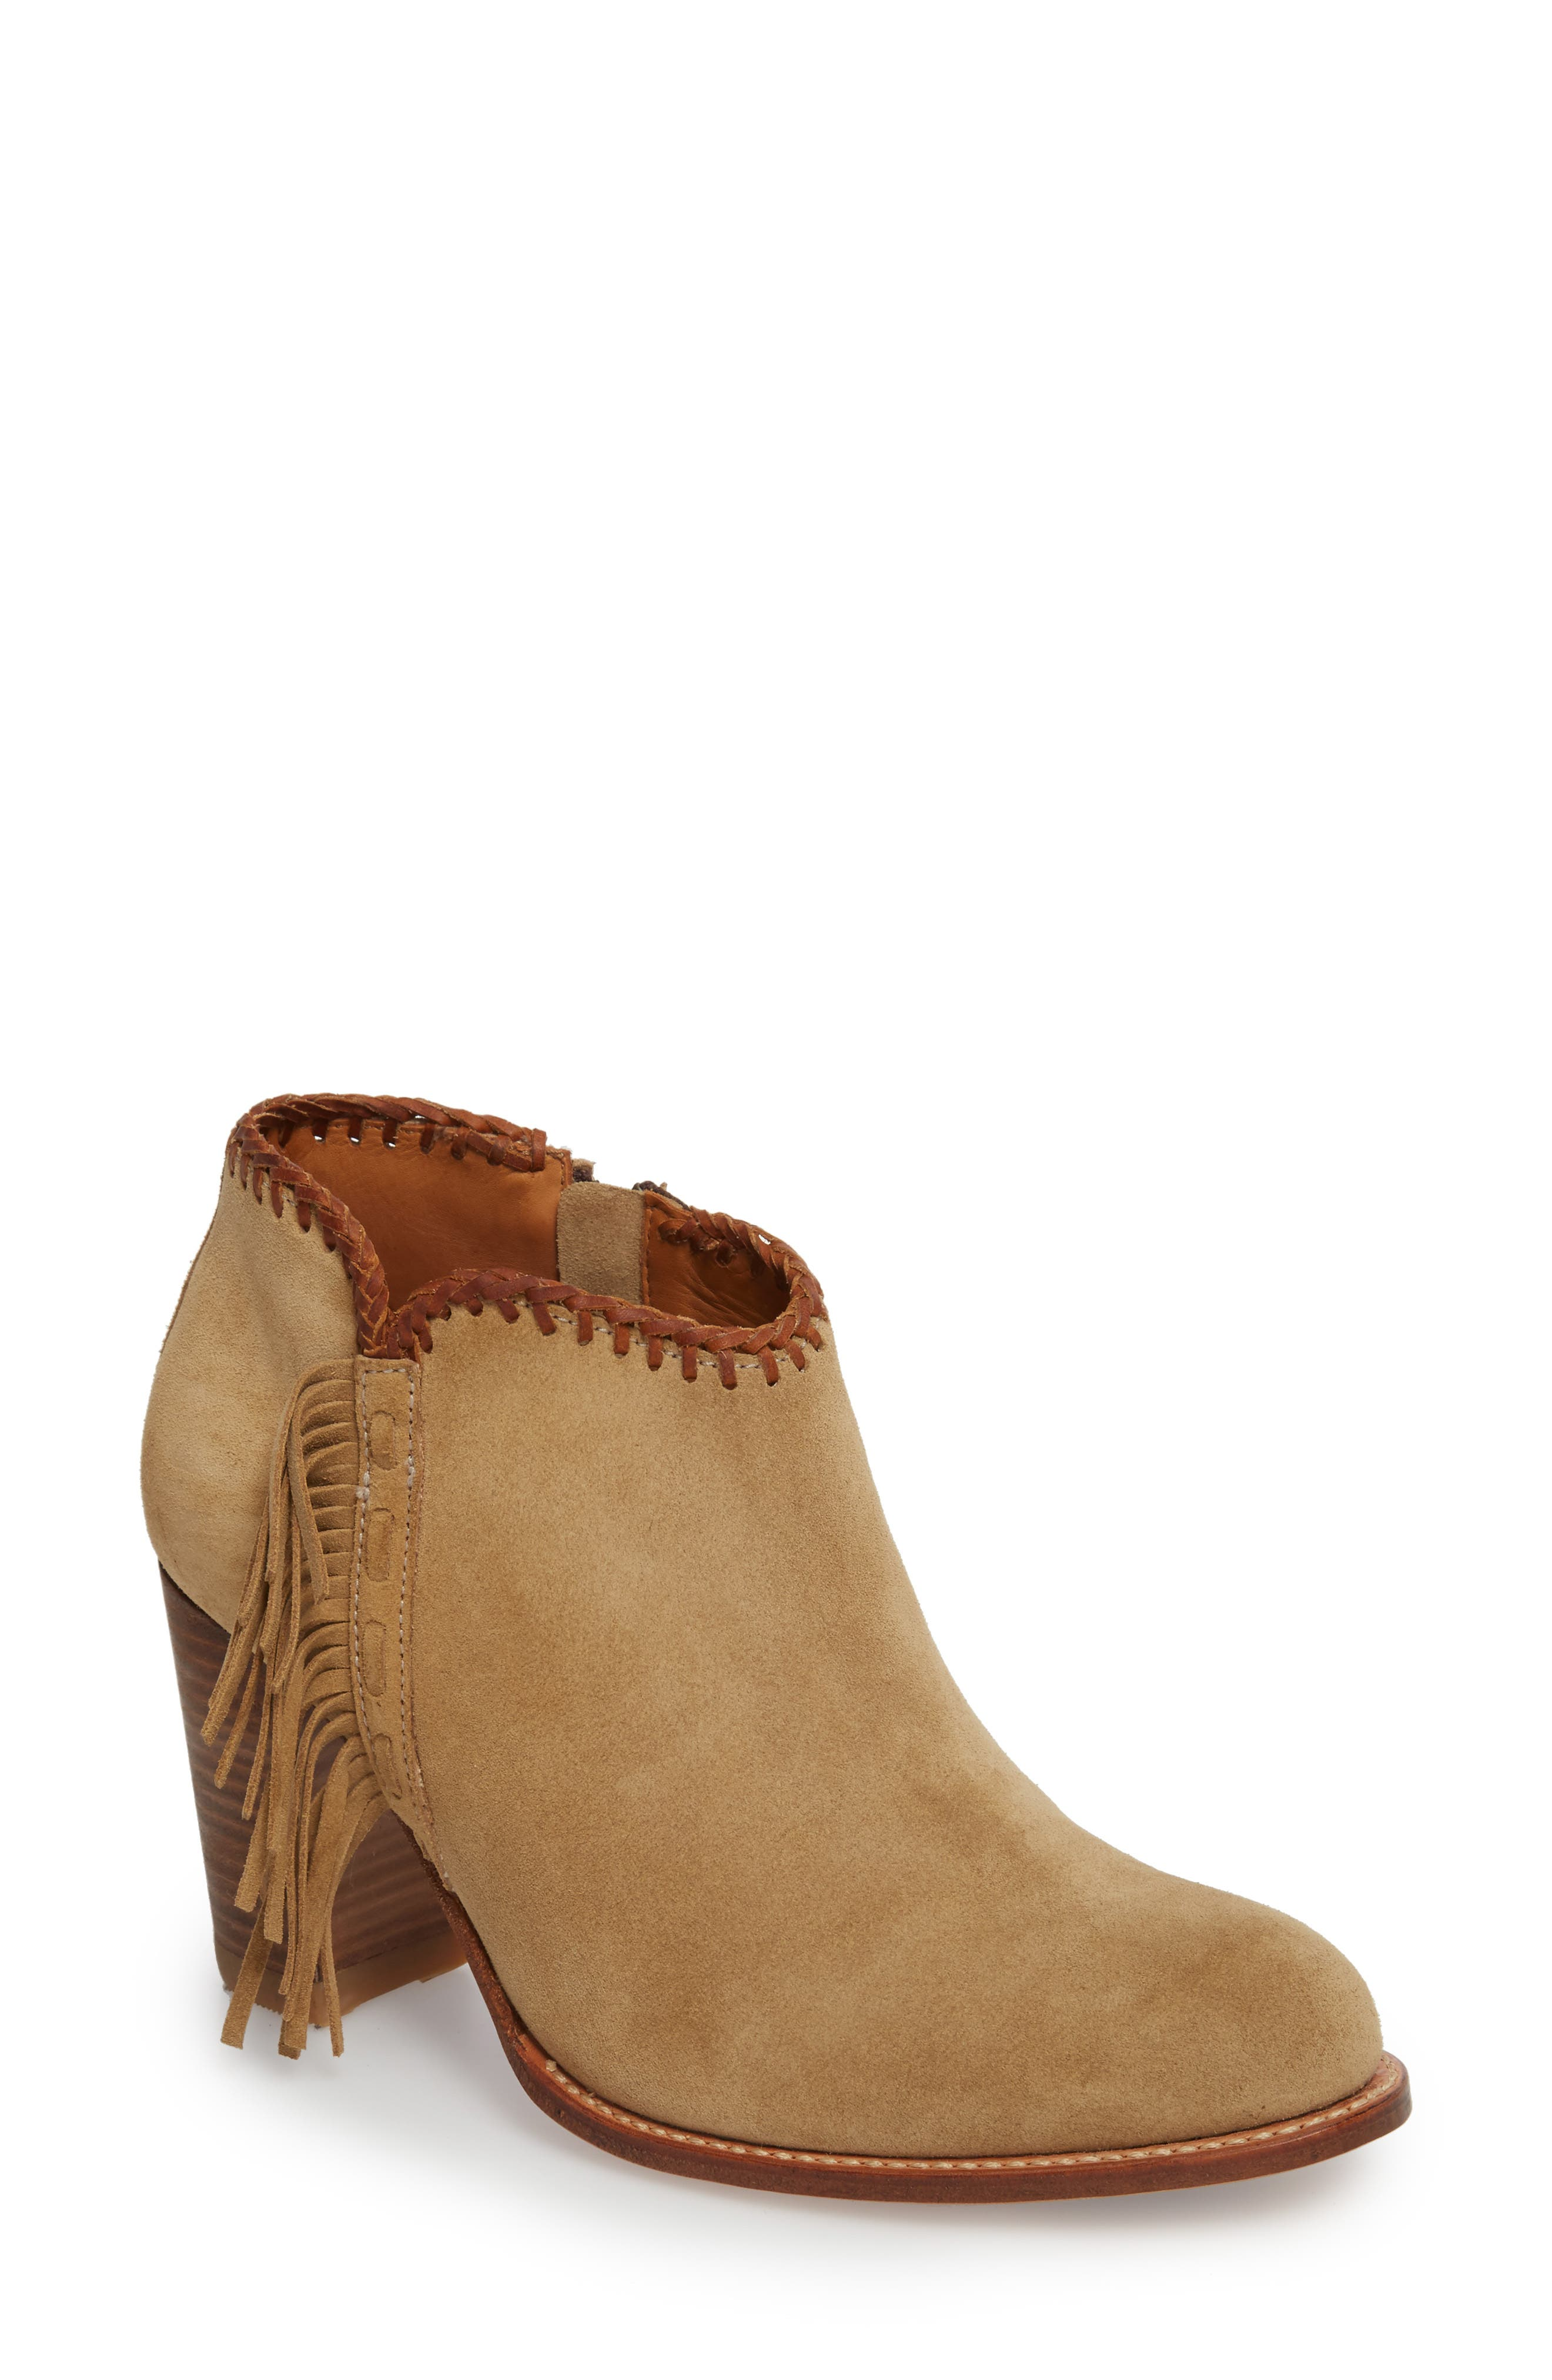 Sonya Fringed Bootie,                             Main thumbnail 1, color,                             Taupe Suede